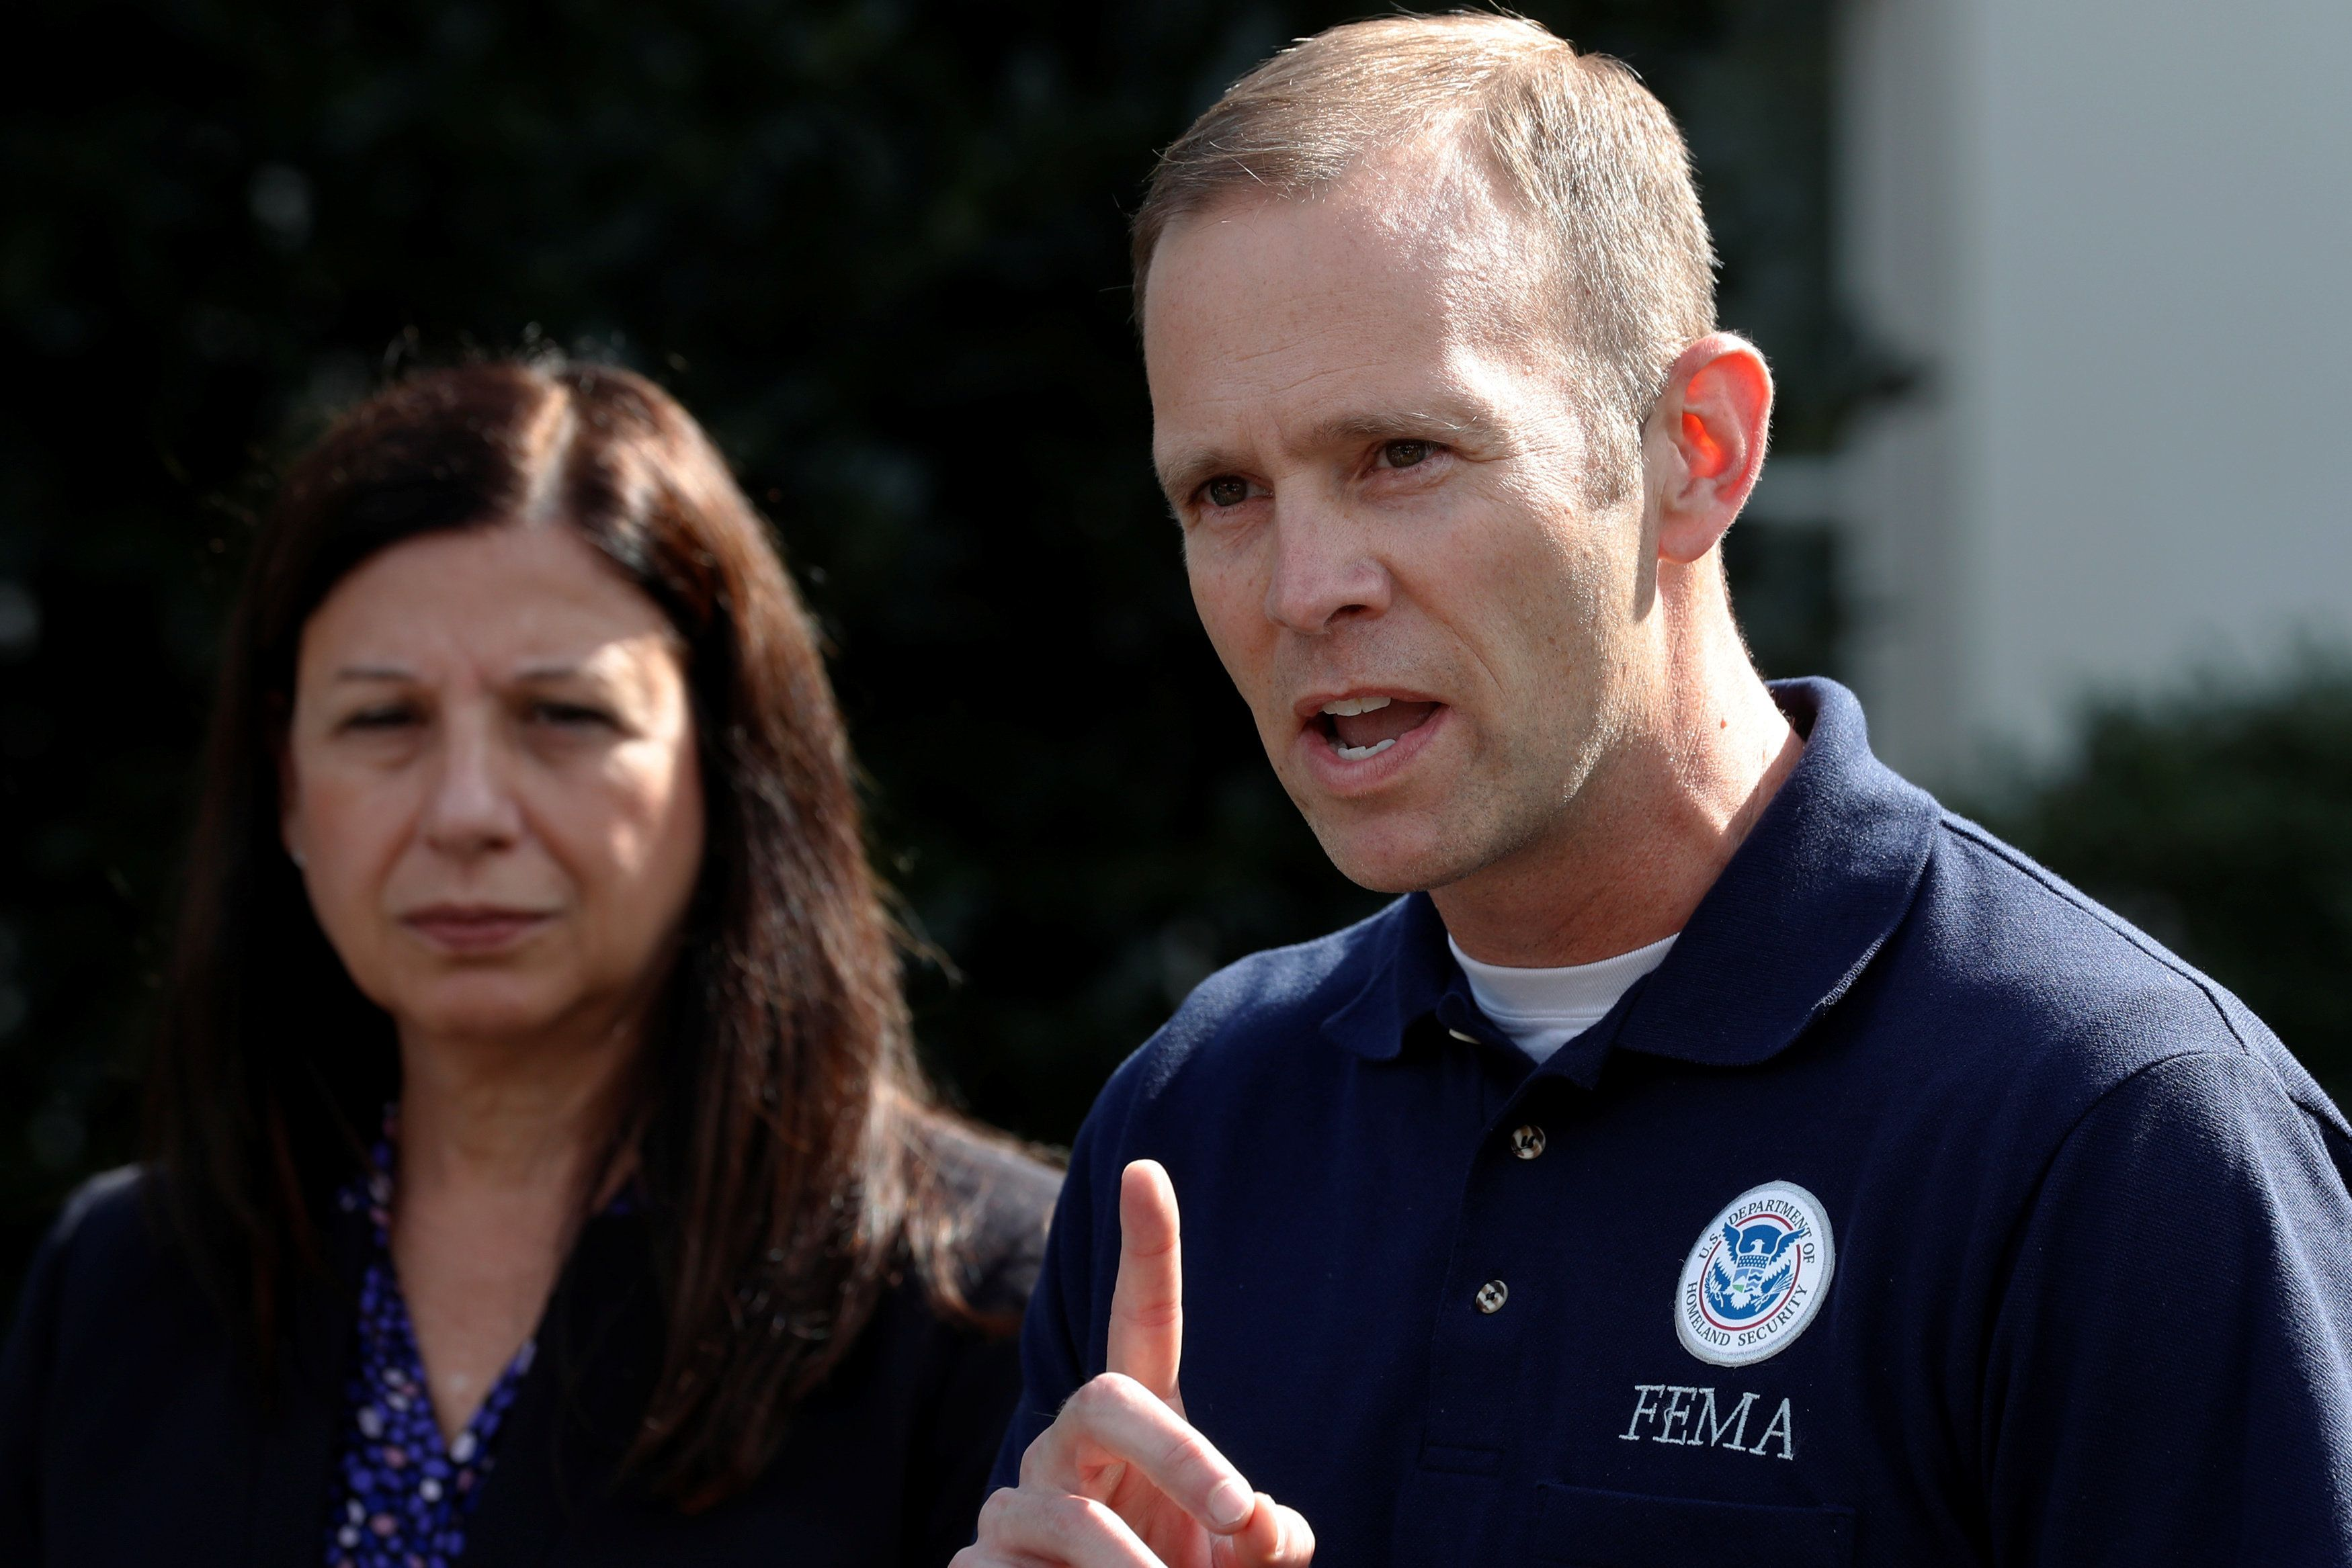 U.S. acting Secretary of Homeland Security Elaine Duke and Federal Emergency Management Agency (FEMA) Administrator Brock Long speak to reporters about Hurricane Maria relief efforts after meeting at the White House in Washington, U.S. September 26, 2017.  REUTERS/Jonathan Ernst